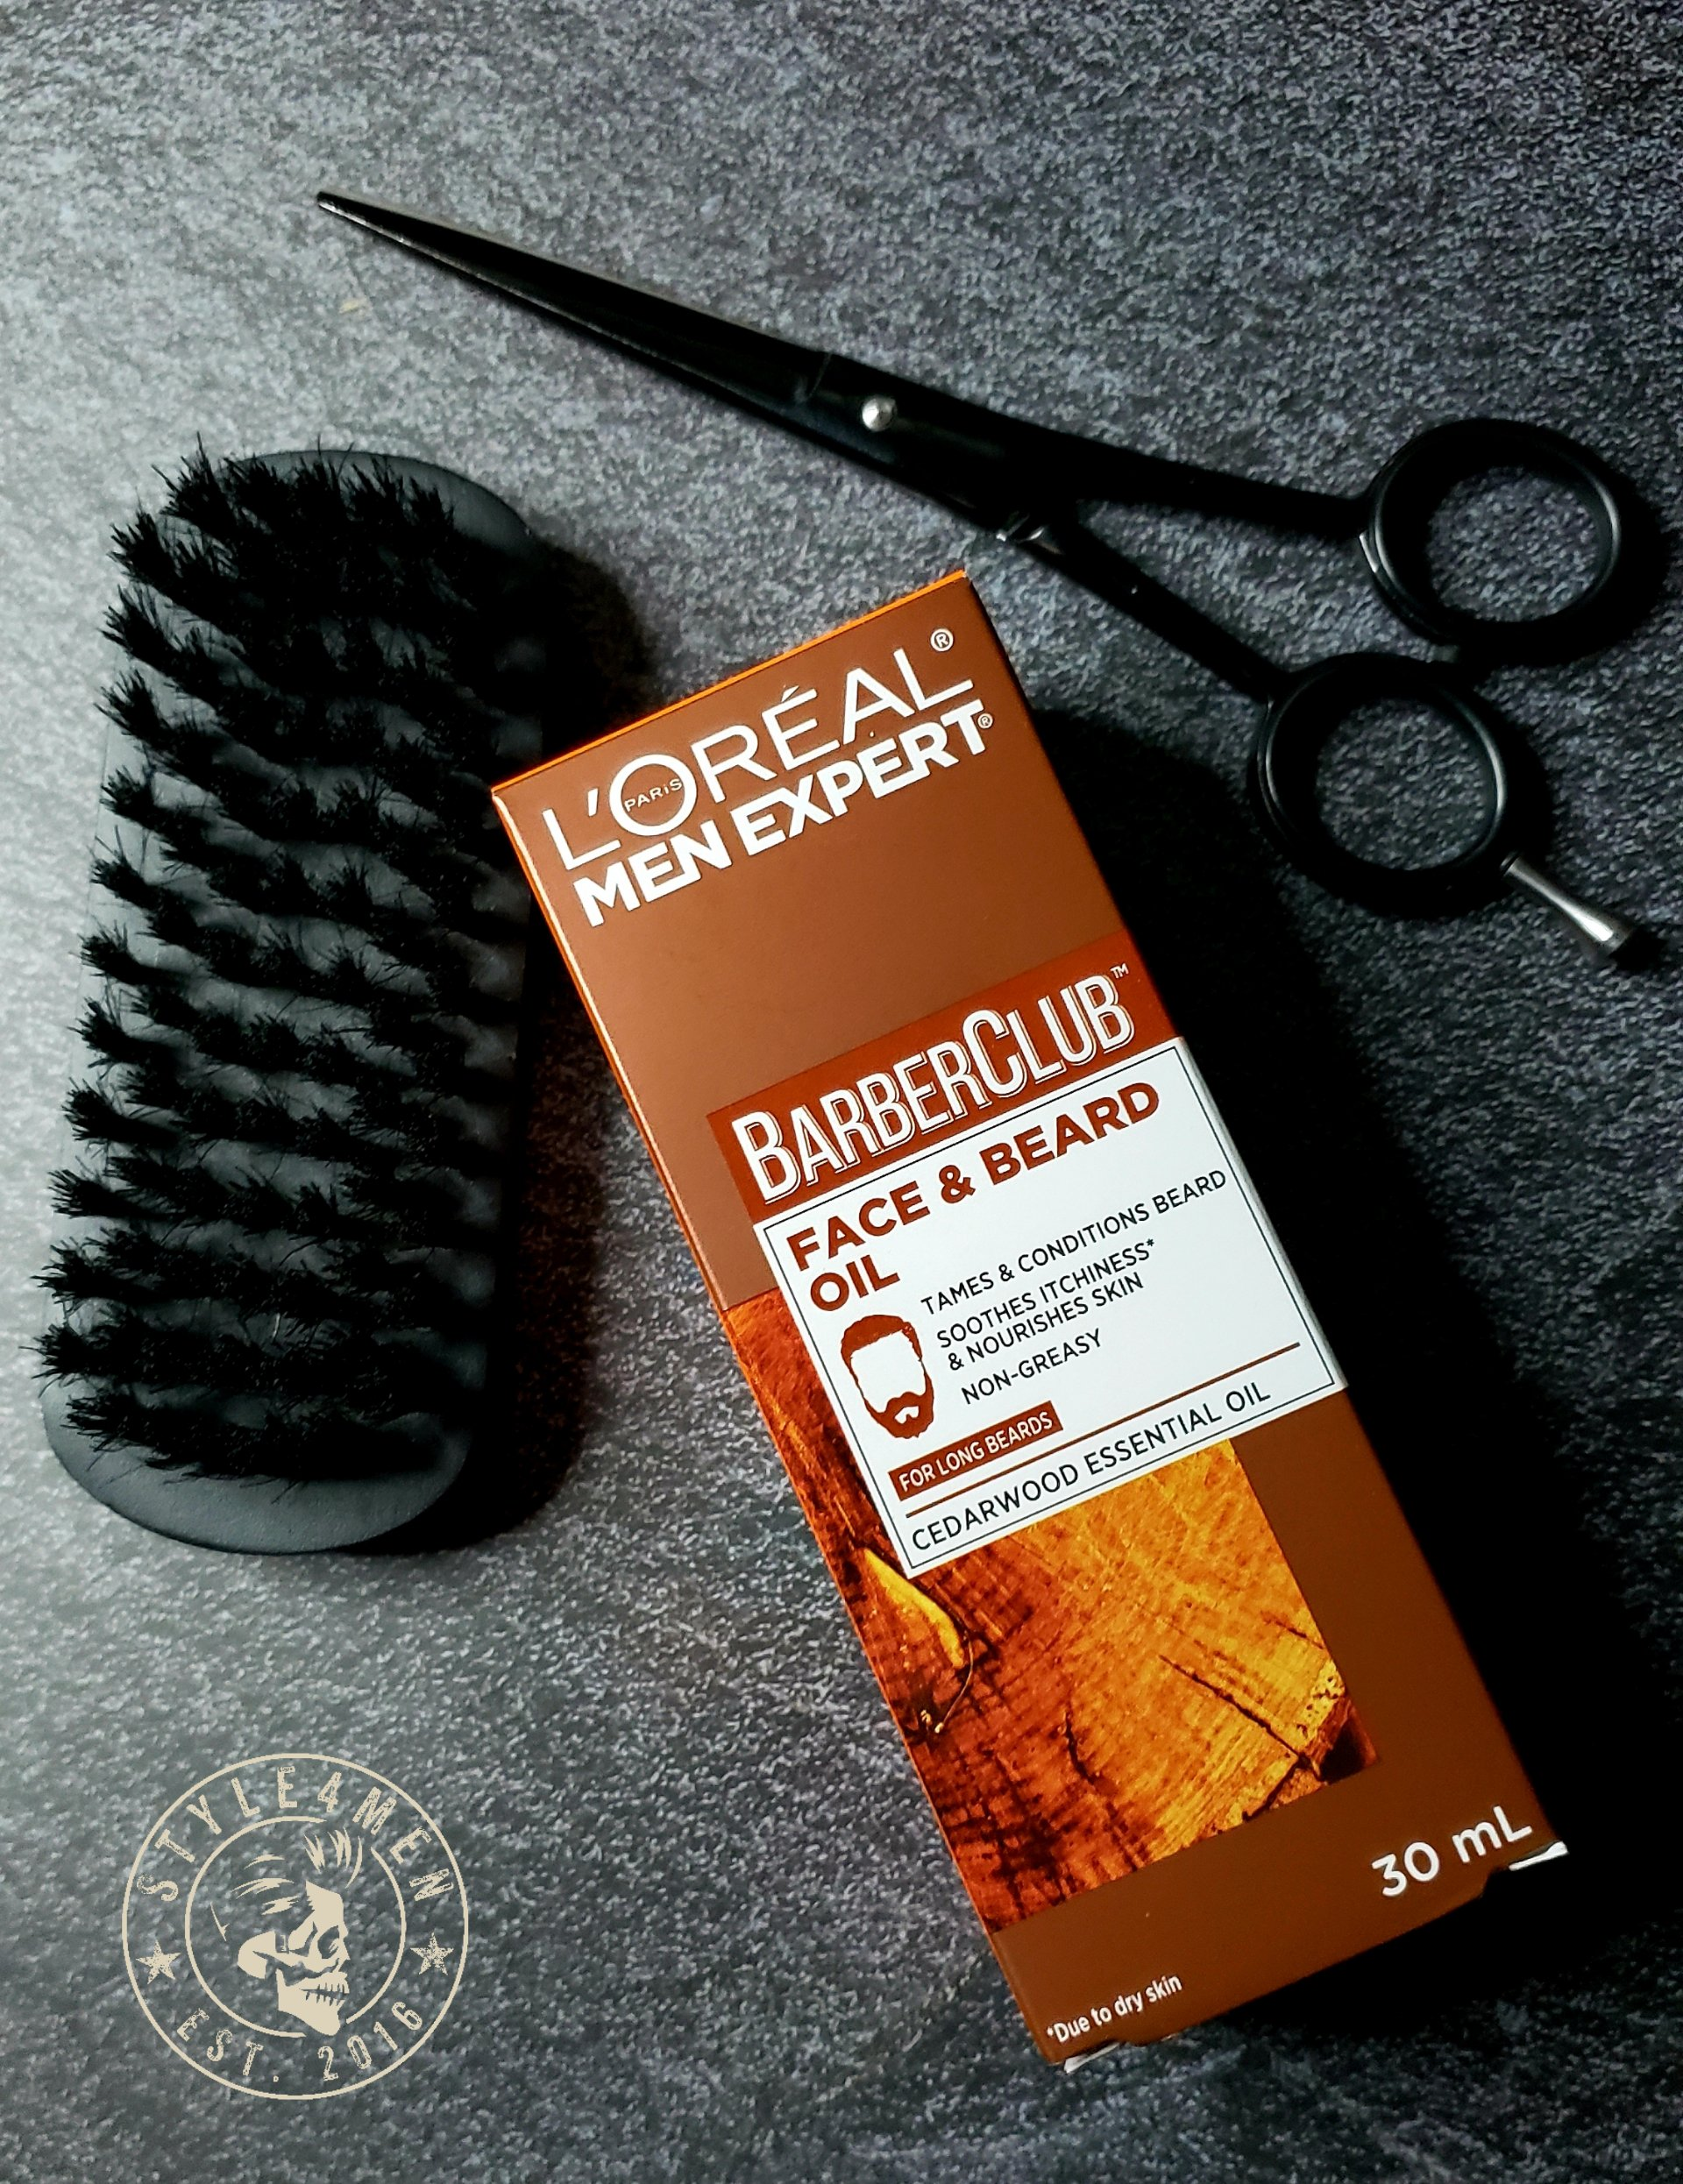 L'Oréal Men Expert Beard Oil